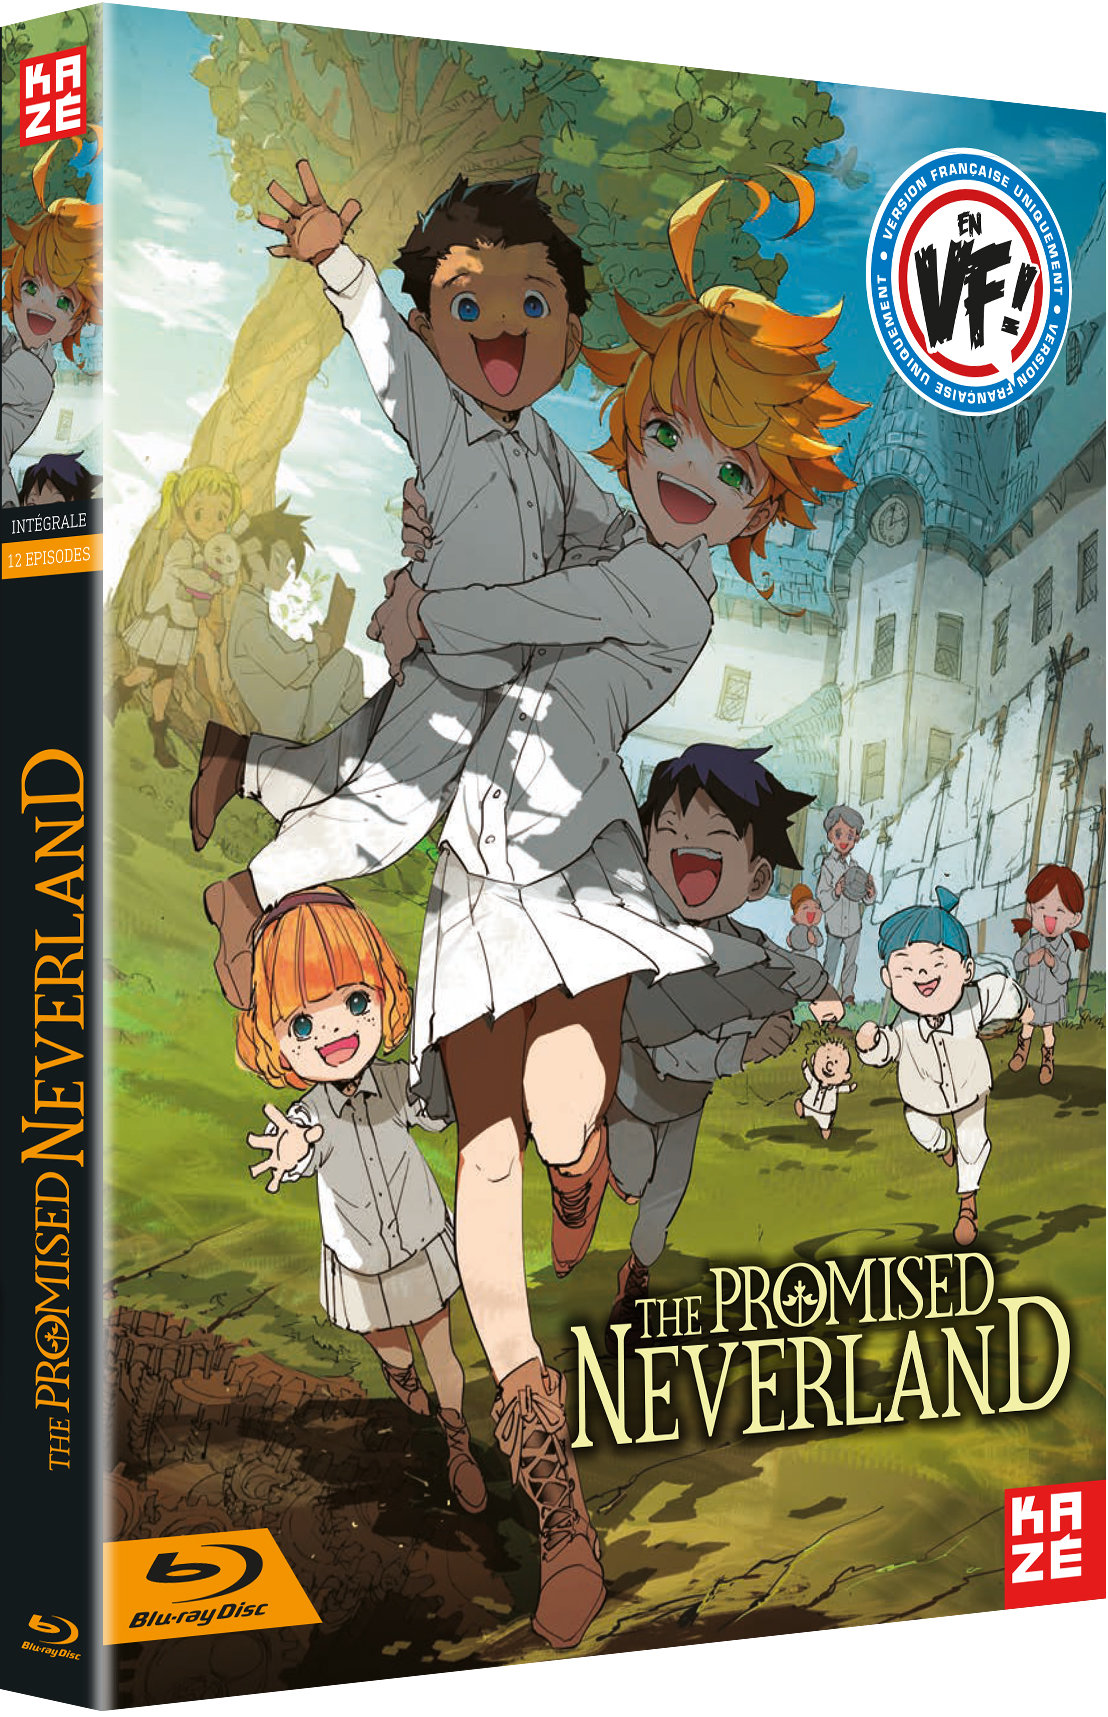 Agenda Culturel : The Promised Neverland